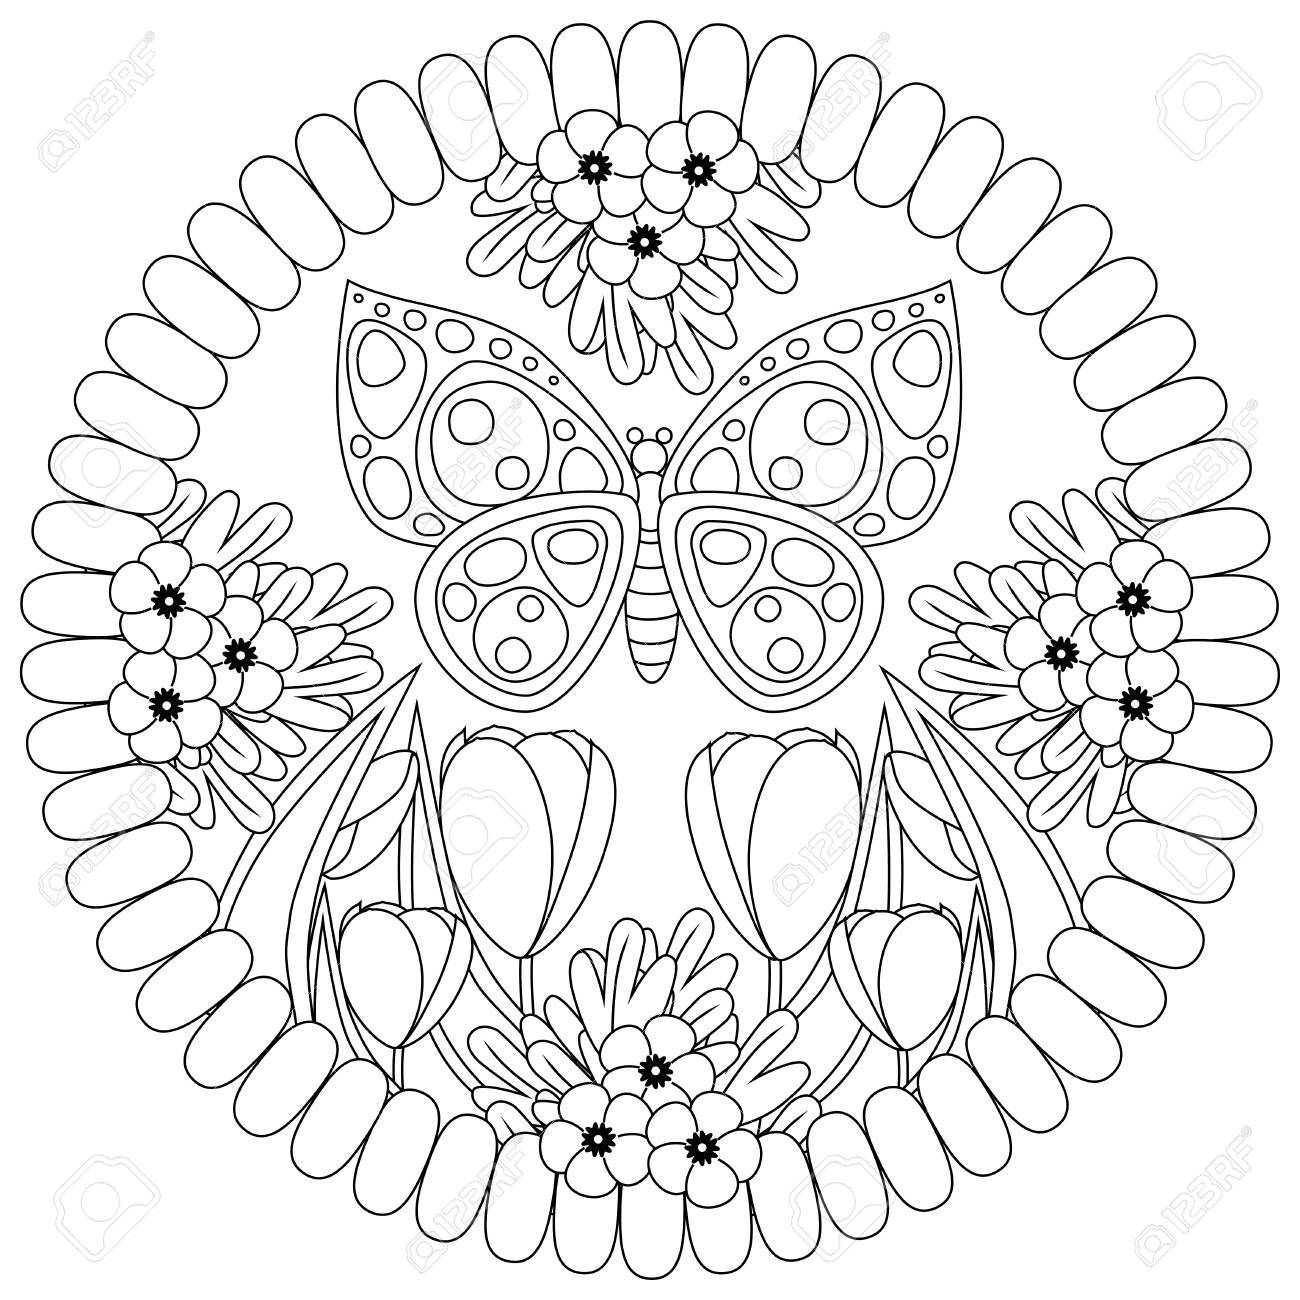 Coloring Book Page For Adults And Kids In Doodle Style Vector Royalty Free Cliparts Vectors And Stock Illustration Image 80944697